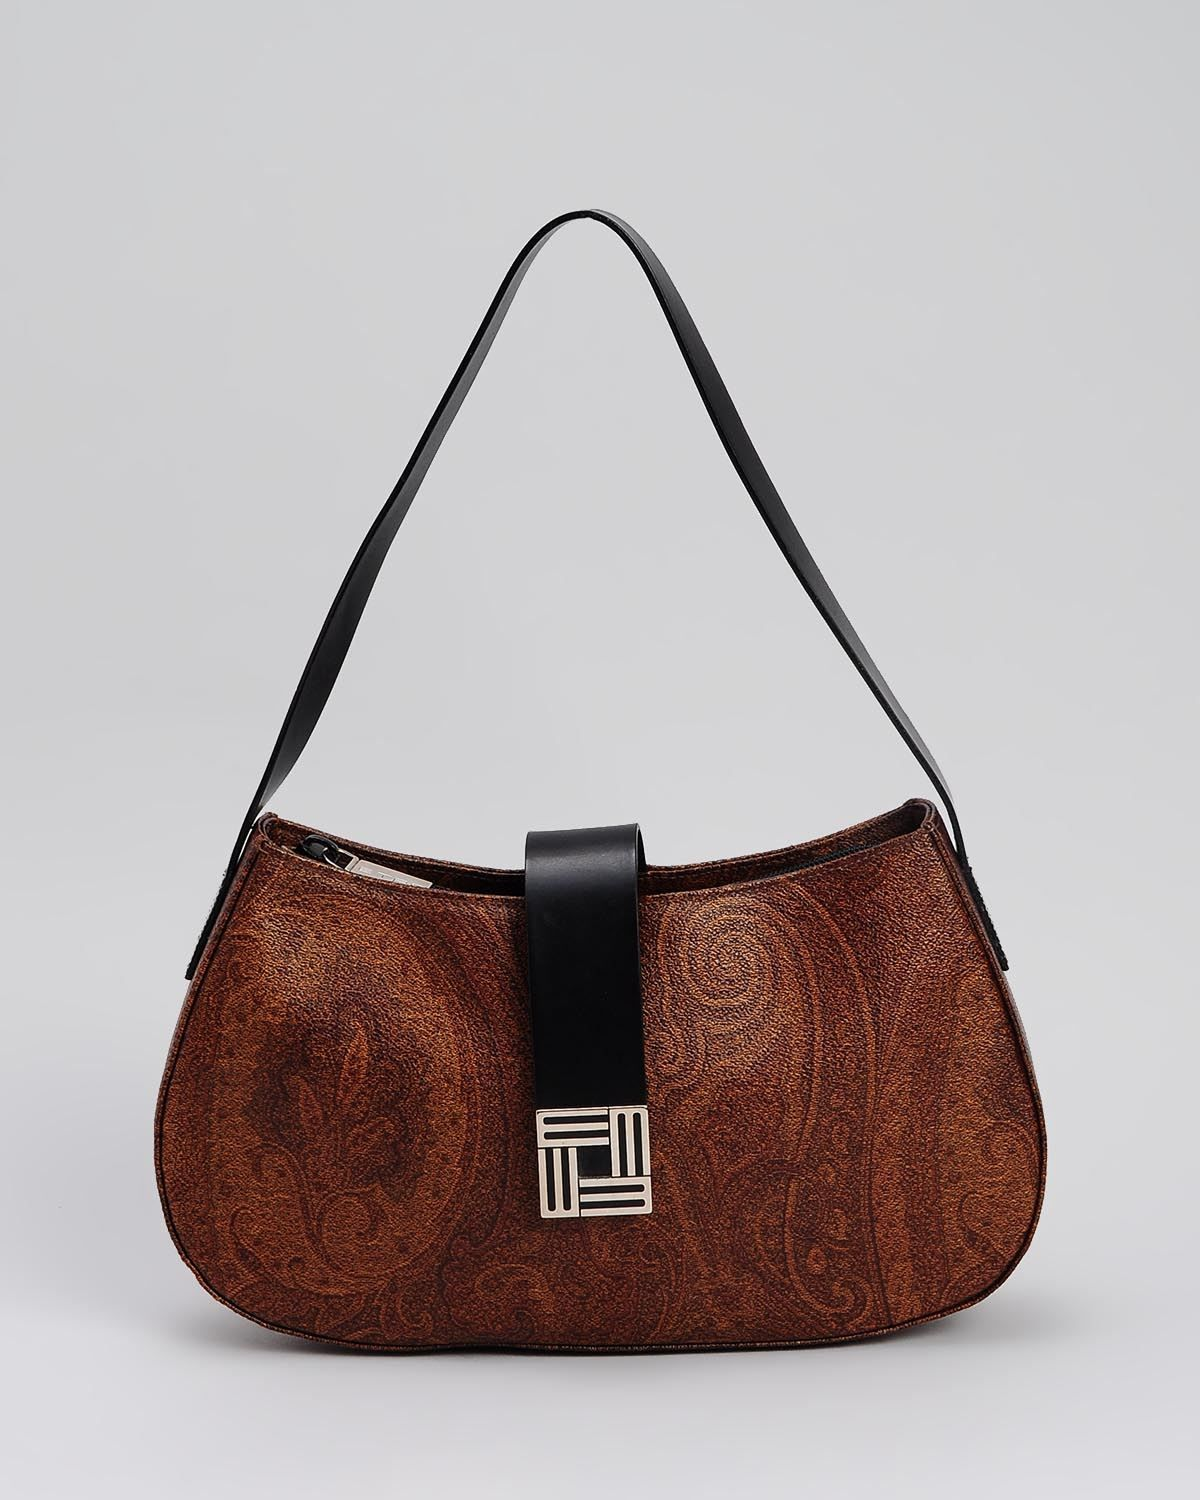 ETRO Purse for $265 at Modnique. Start shopping now and save 47%. Flexible return policy, 24/7 client support, authenticity guaranteed